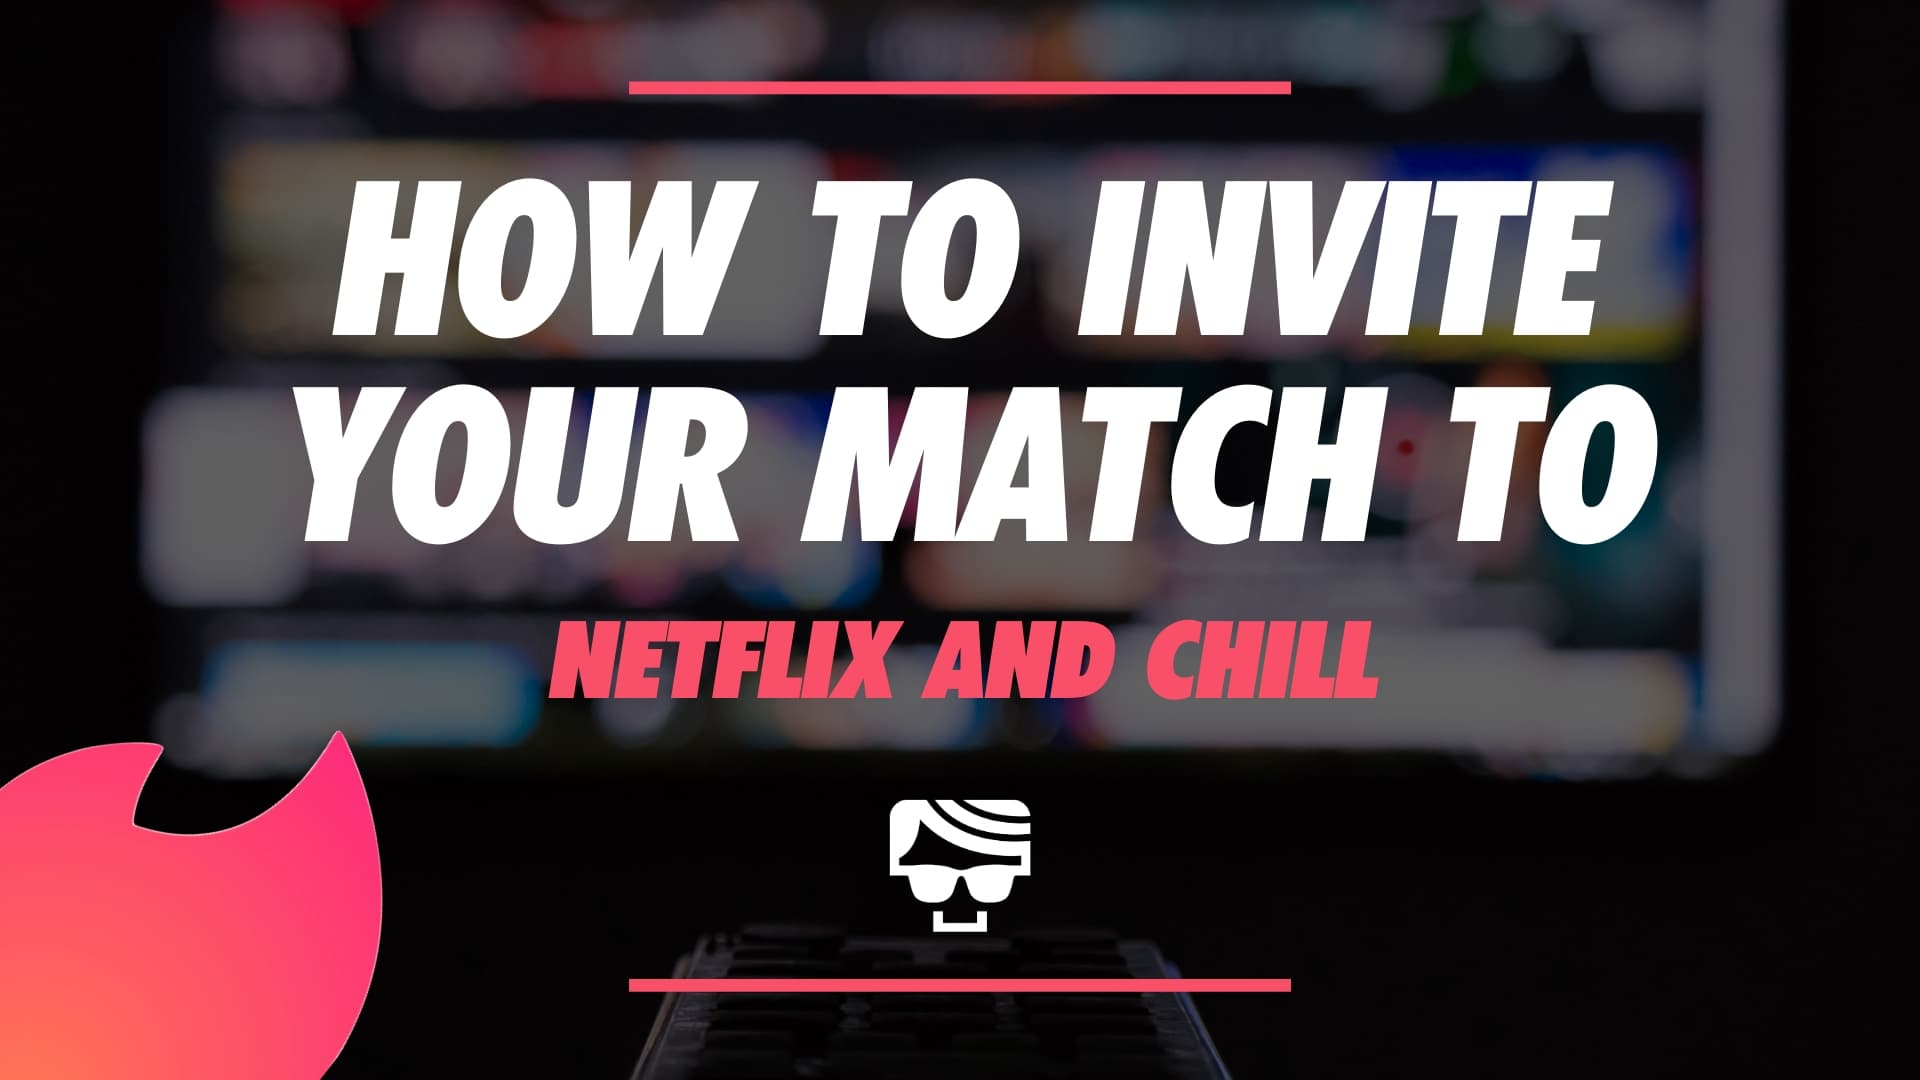 what is netflix and chill mean